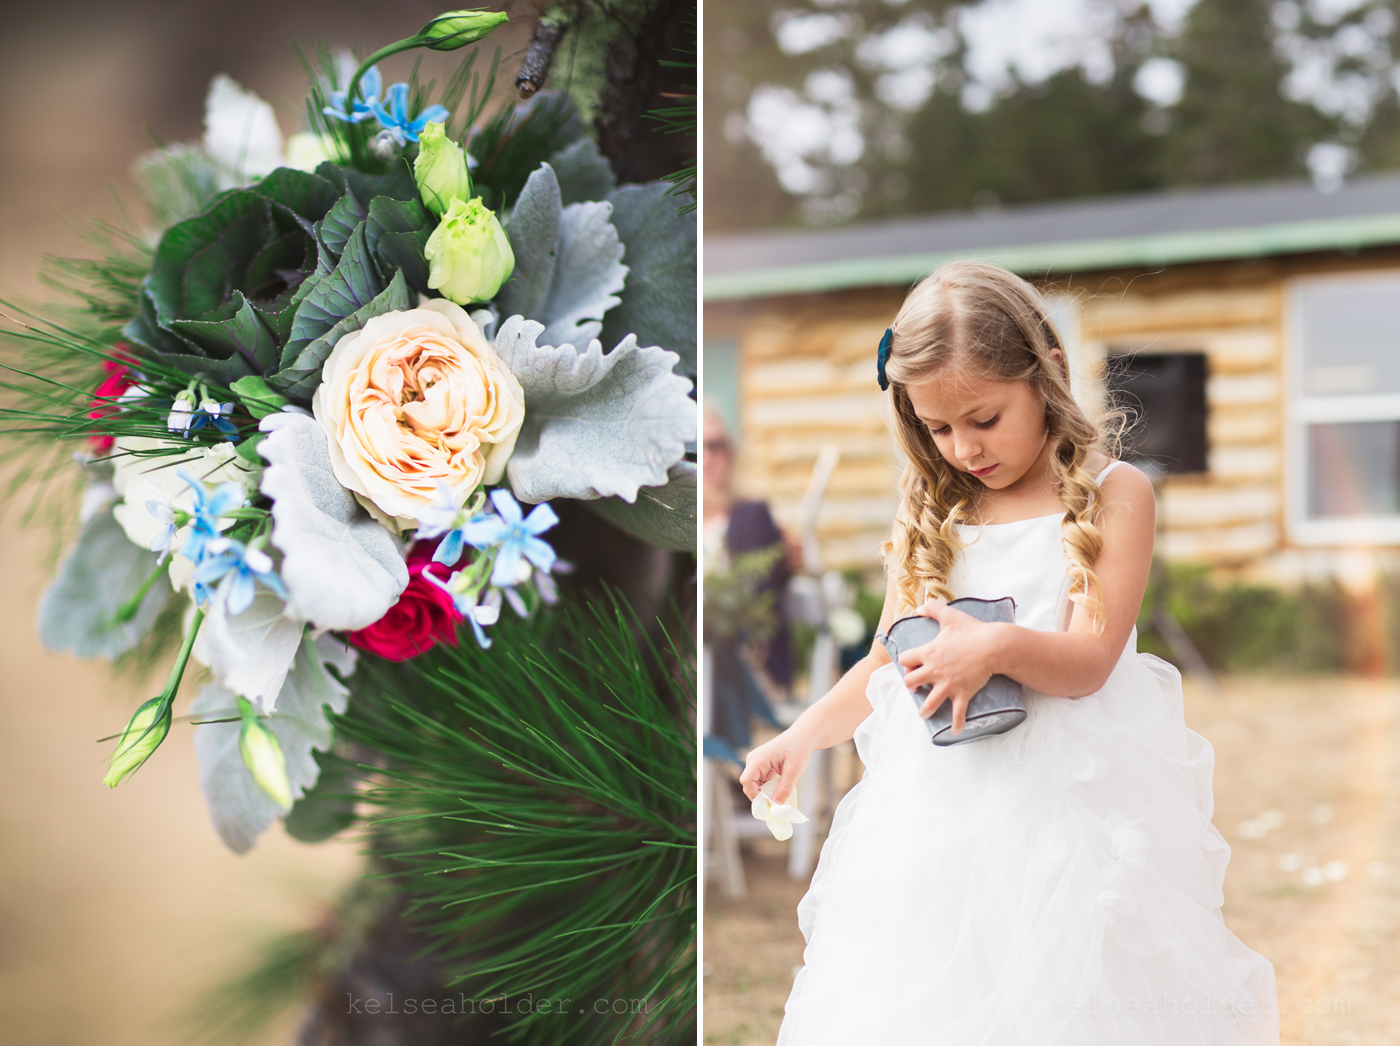 kelsea_holder_eco_outdoor_california_wedding027